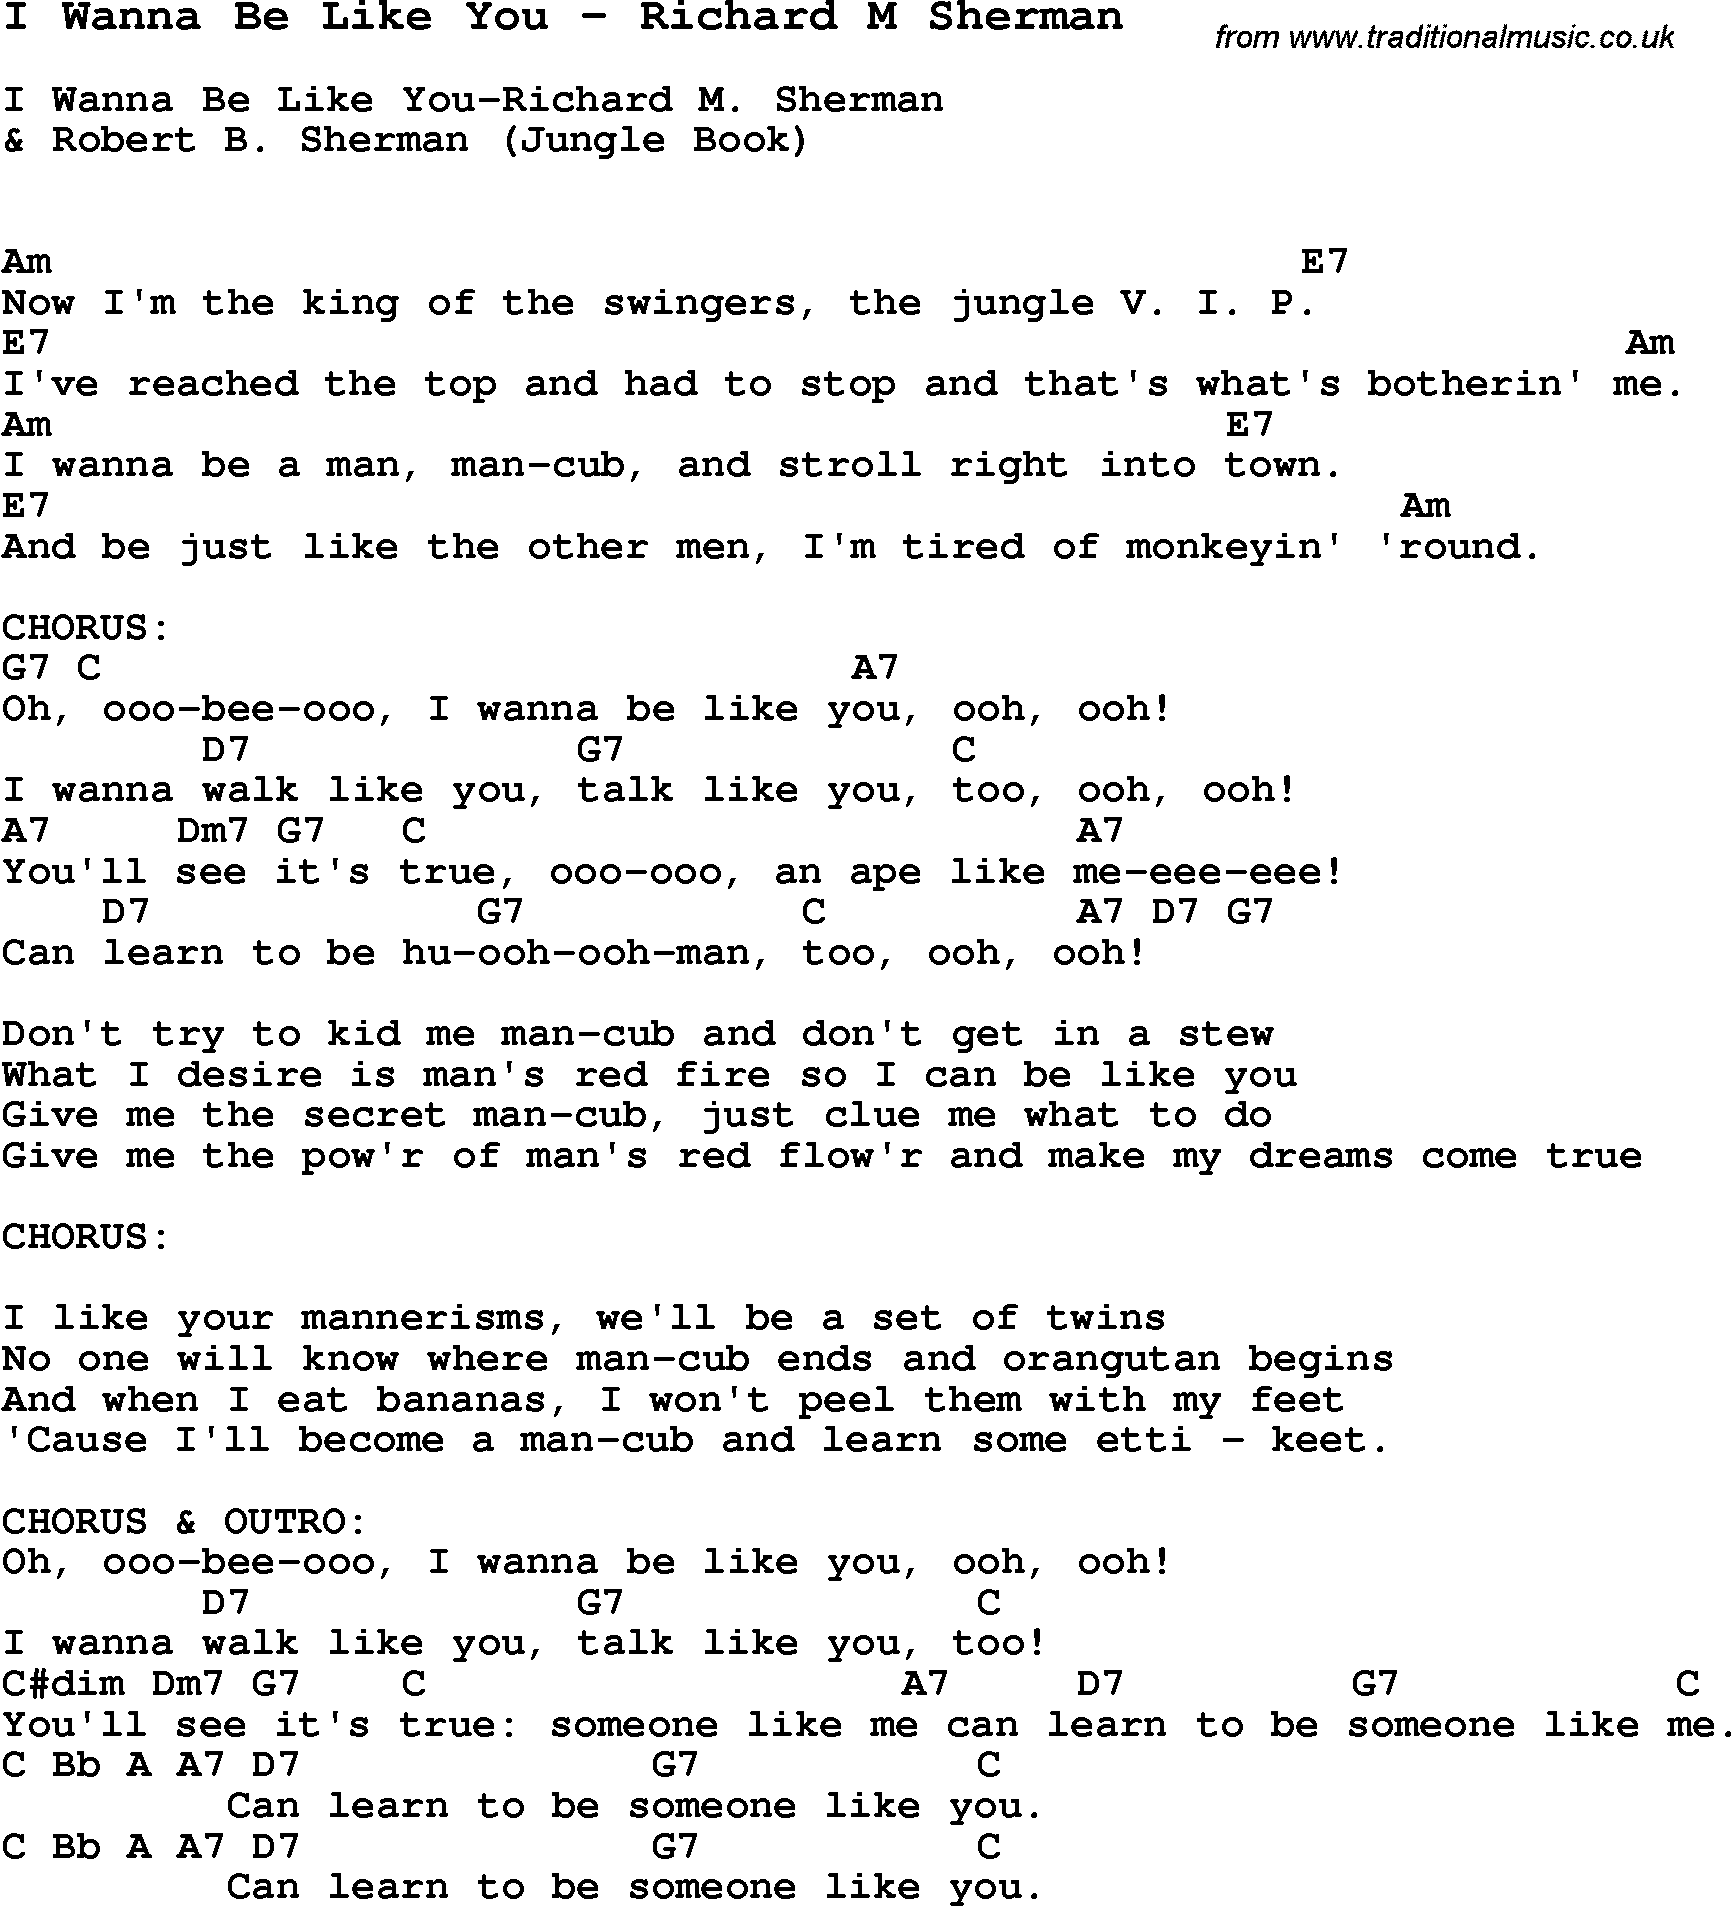 Song i wanna be like you by richard m sherman with lyrics for song i wanna be like you by richard m sherman song lyric for vocal performance plus accompaniment chords for ukulele guitar banjo etc hexwebz Gallery